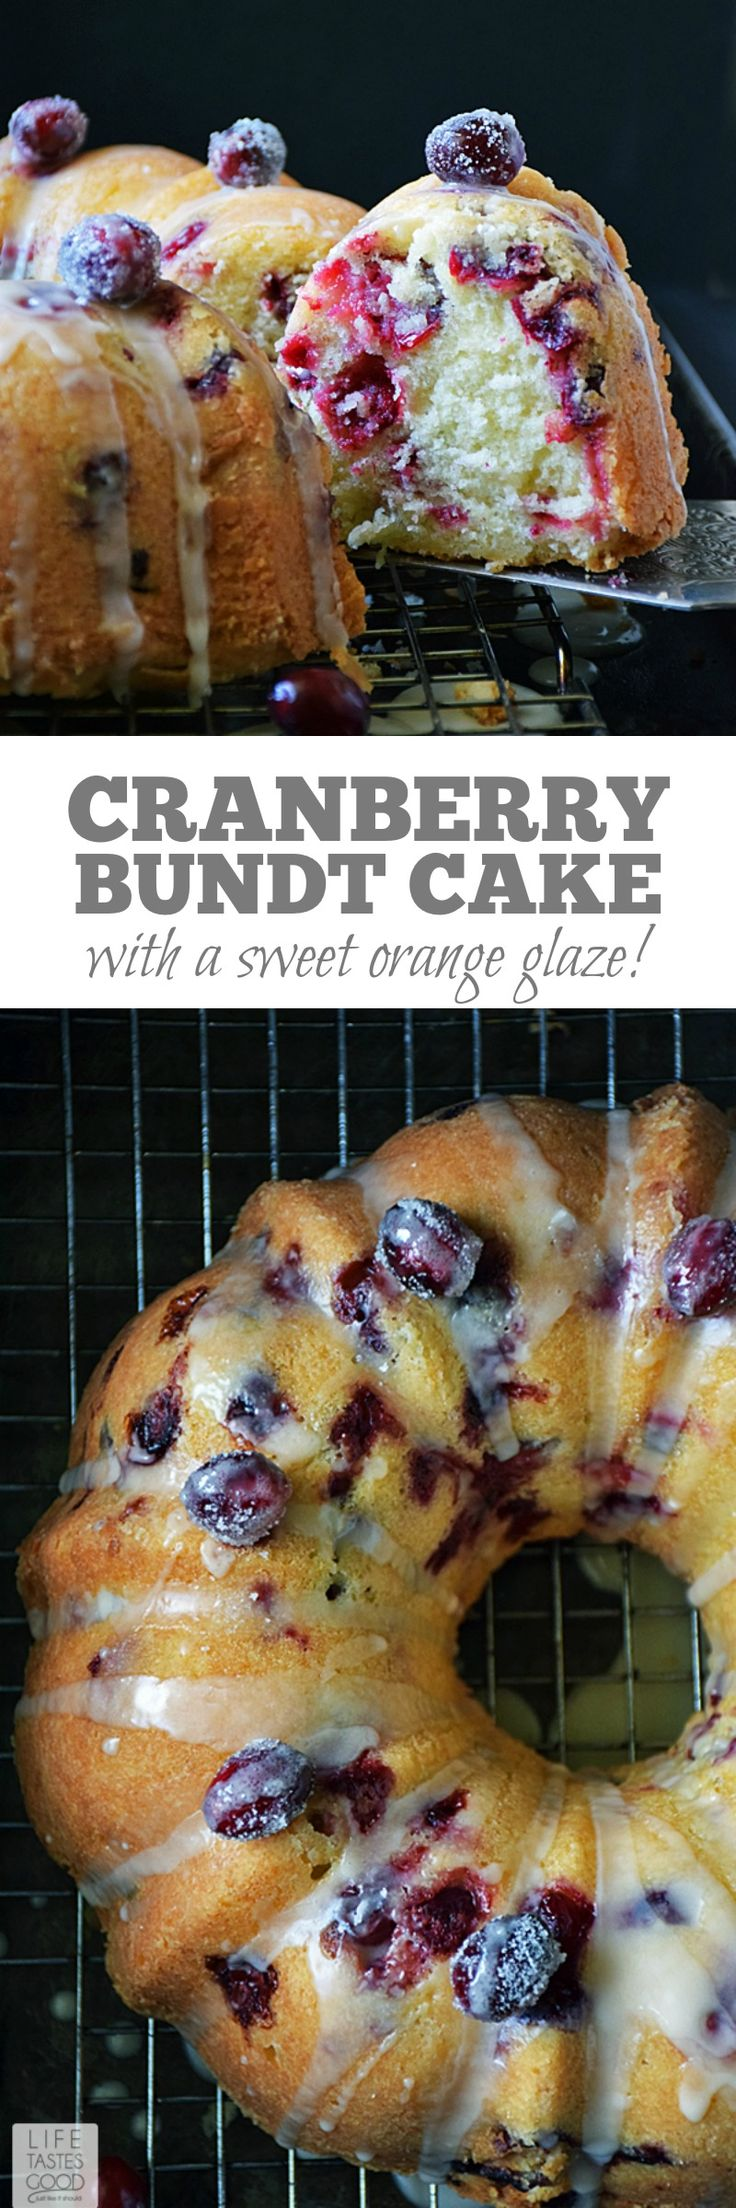 If you are looking for A festive dessert to serve this holiday season, you are definitely in the right place! This Cranberry Bundt Cake   by Life Tastes Good has fresh cranberries with a sweet orange glaze that will be the hit of the party! #LTGrecipes